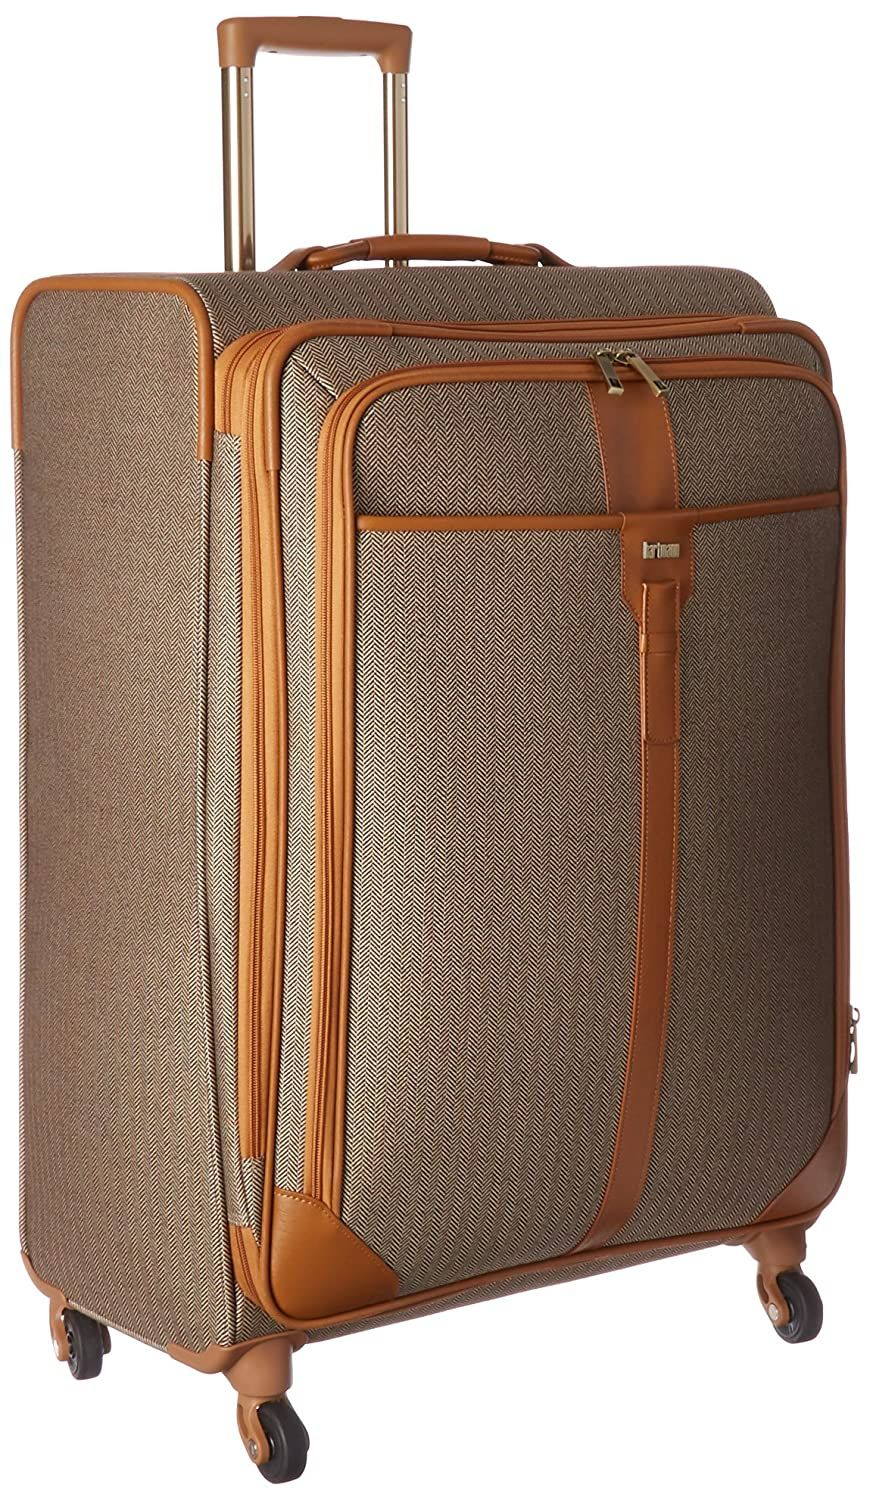 Hartmann Herringbone Luxe Expandable Softside Luggage with Spinner Wheels